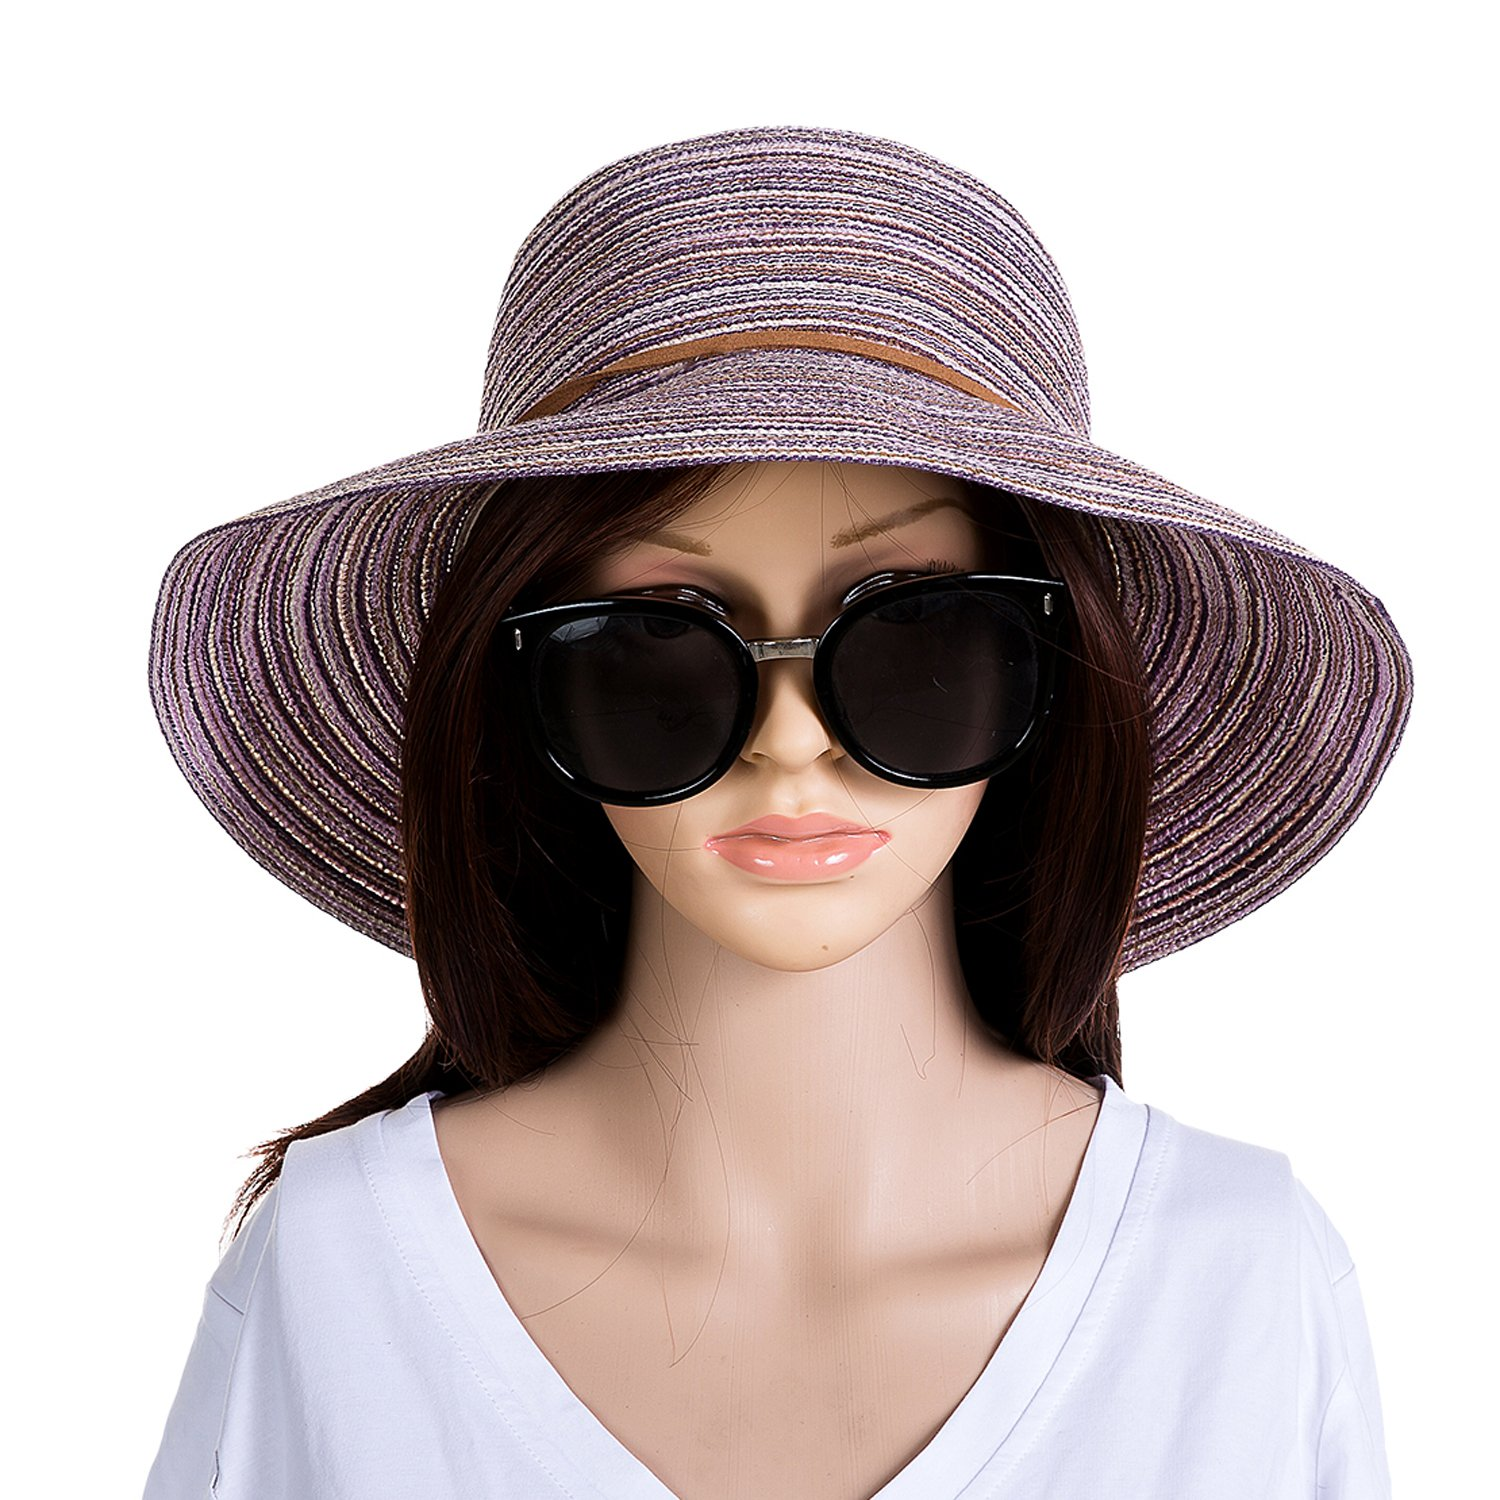 a2382ec4 Womens Foldable Summer Straw Hat Wide Brim Sun Beach hat. It is very  important for girls/ladies/women to protect themselves from direct strong  sunshine.